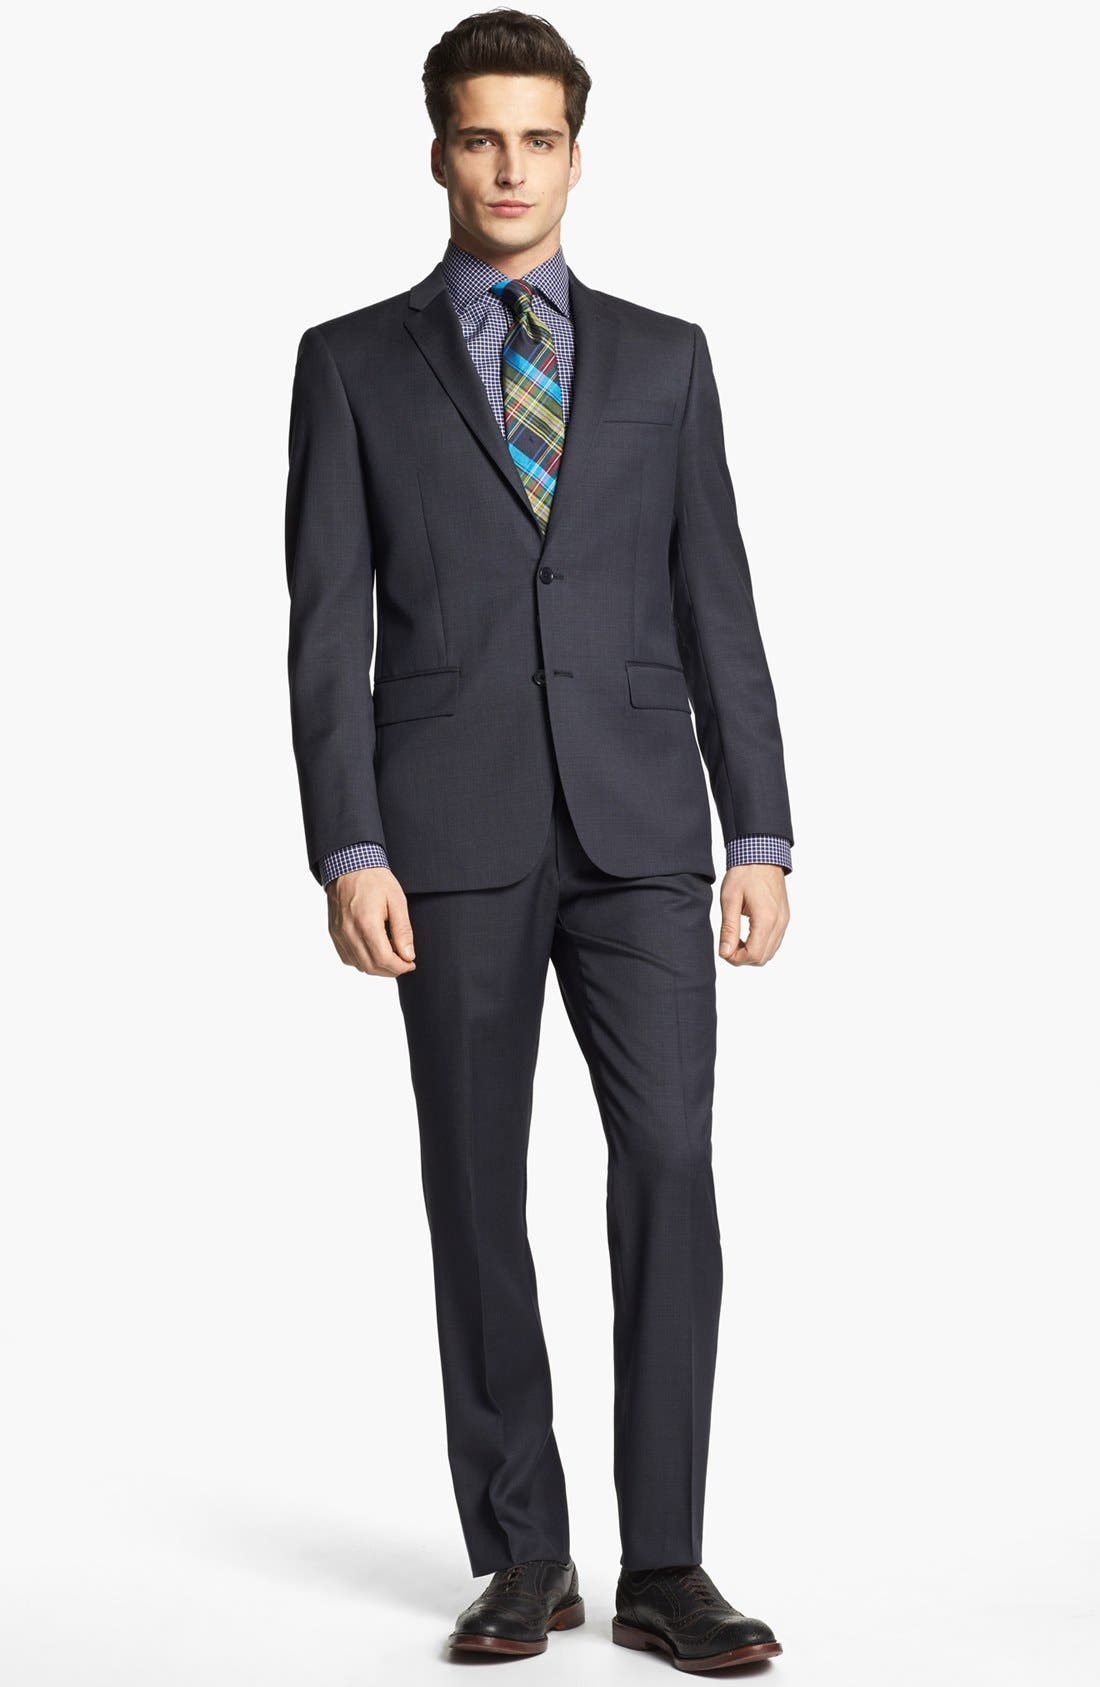 Main Image - John Varvatos Star USA Suit & BOSS Black Dress Shirt